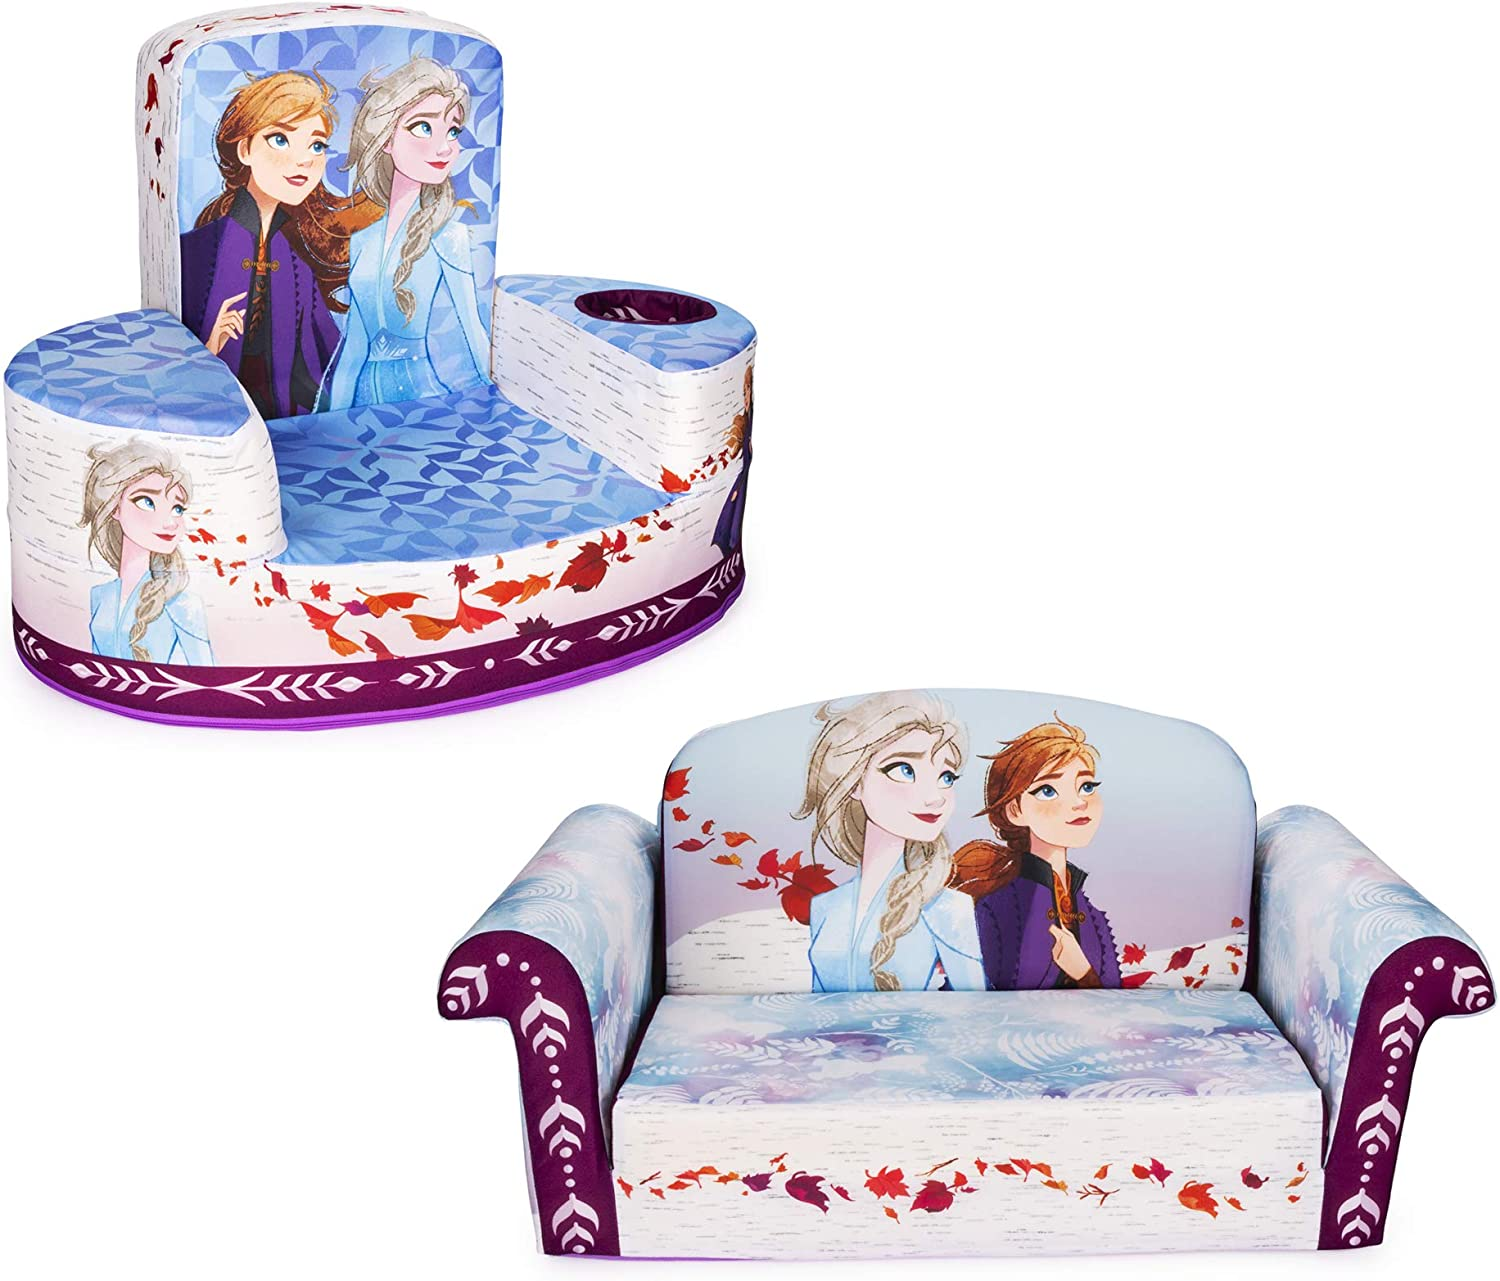 Marshmallow Furniture Comfy Foam Toddler 2-in-1 Flip-Open Couch and Chair Kids Furniture Package for Ages 2 Years Old and Up, Disney Frozen 2